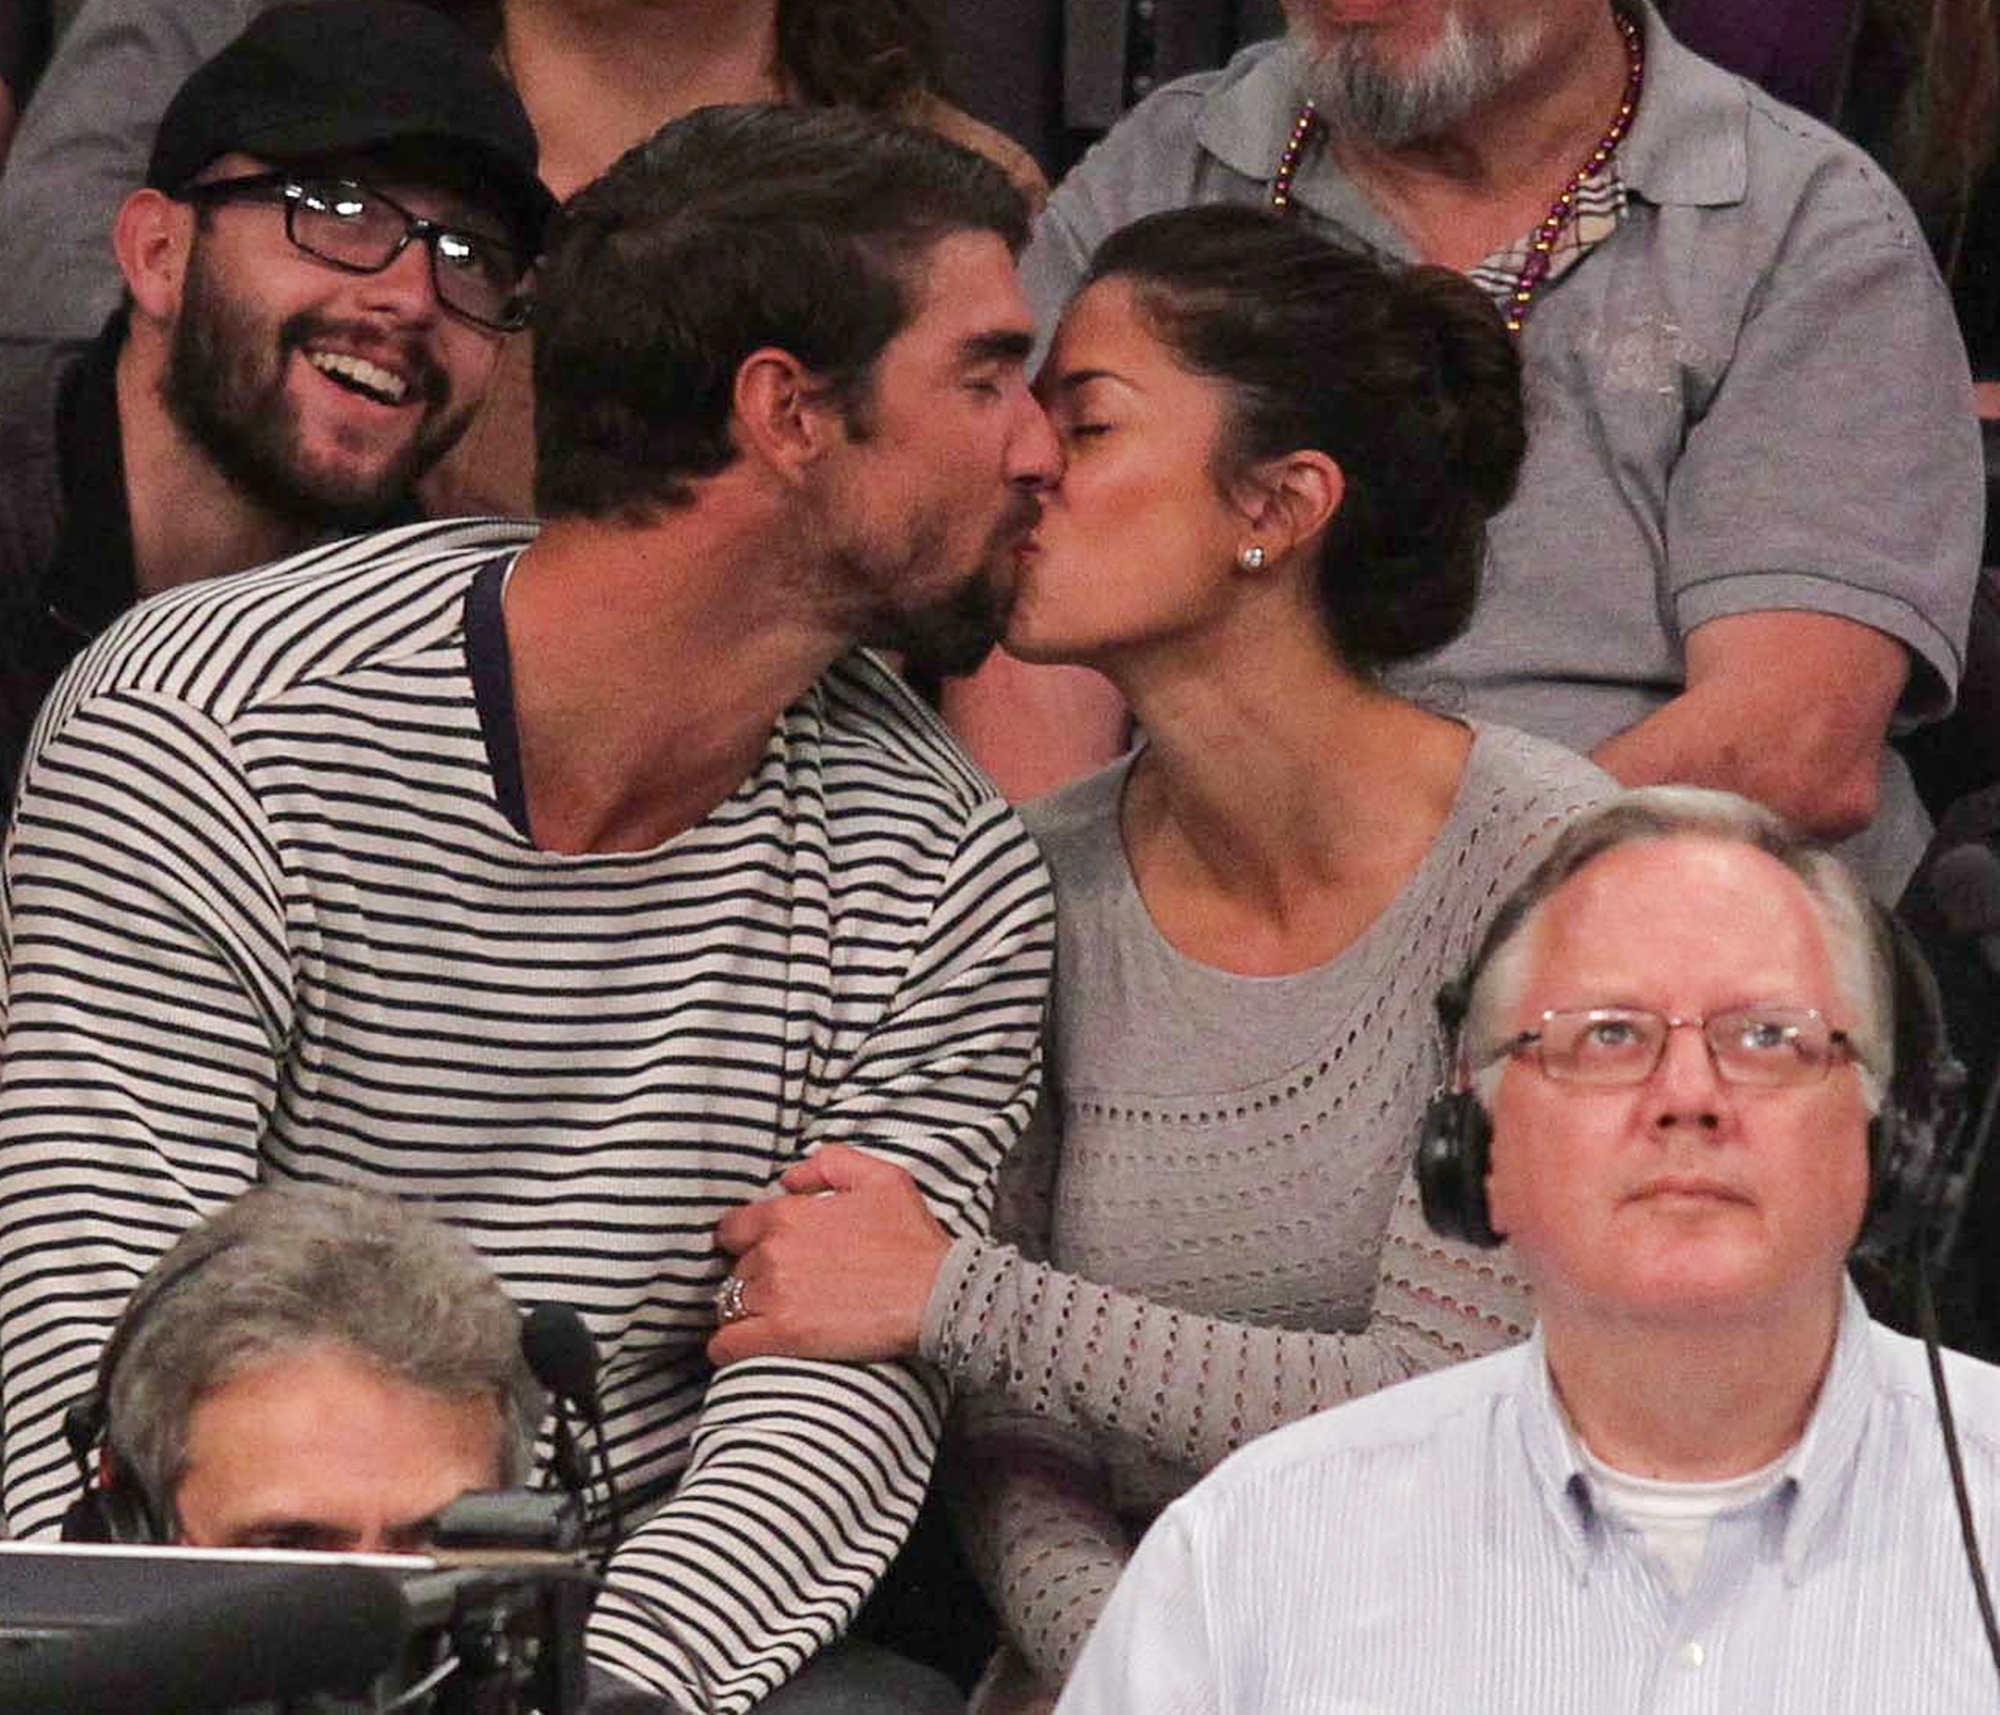 Michael Phelps watches the Lakers with Nicole Johnson in Los Angeles